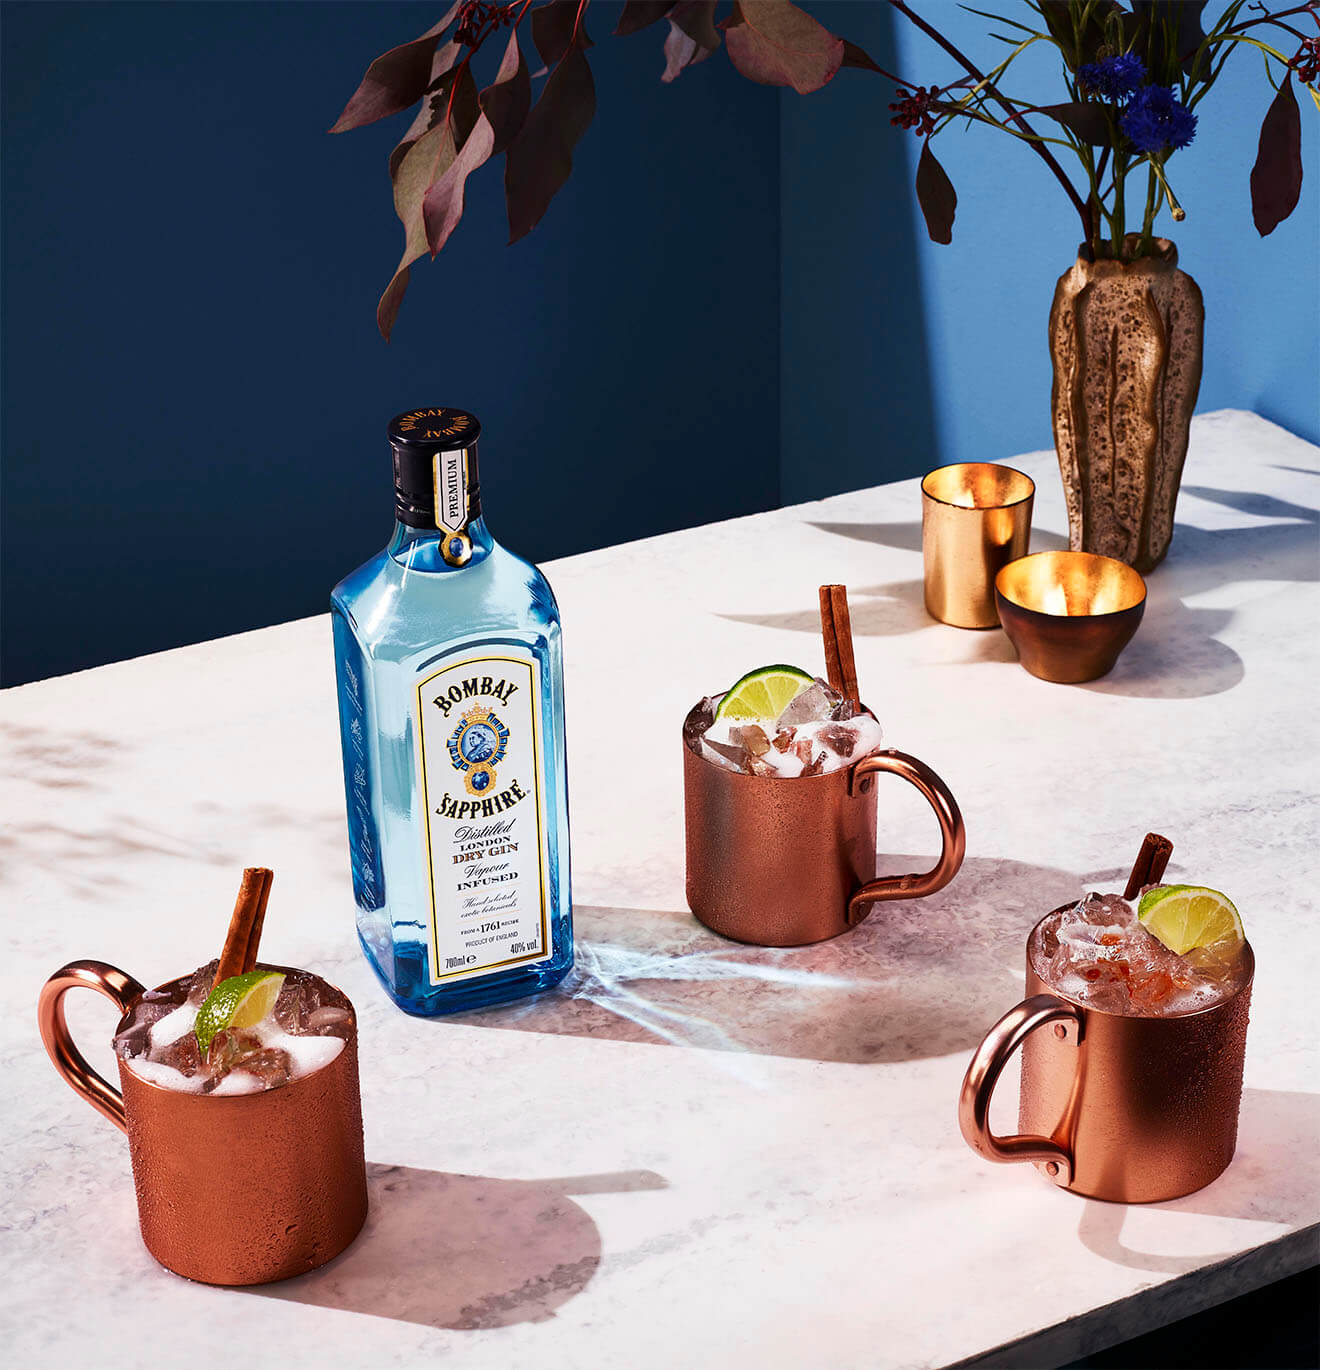 Bombay Spiced Mule